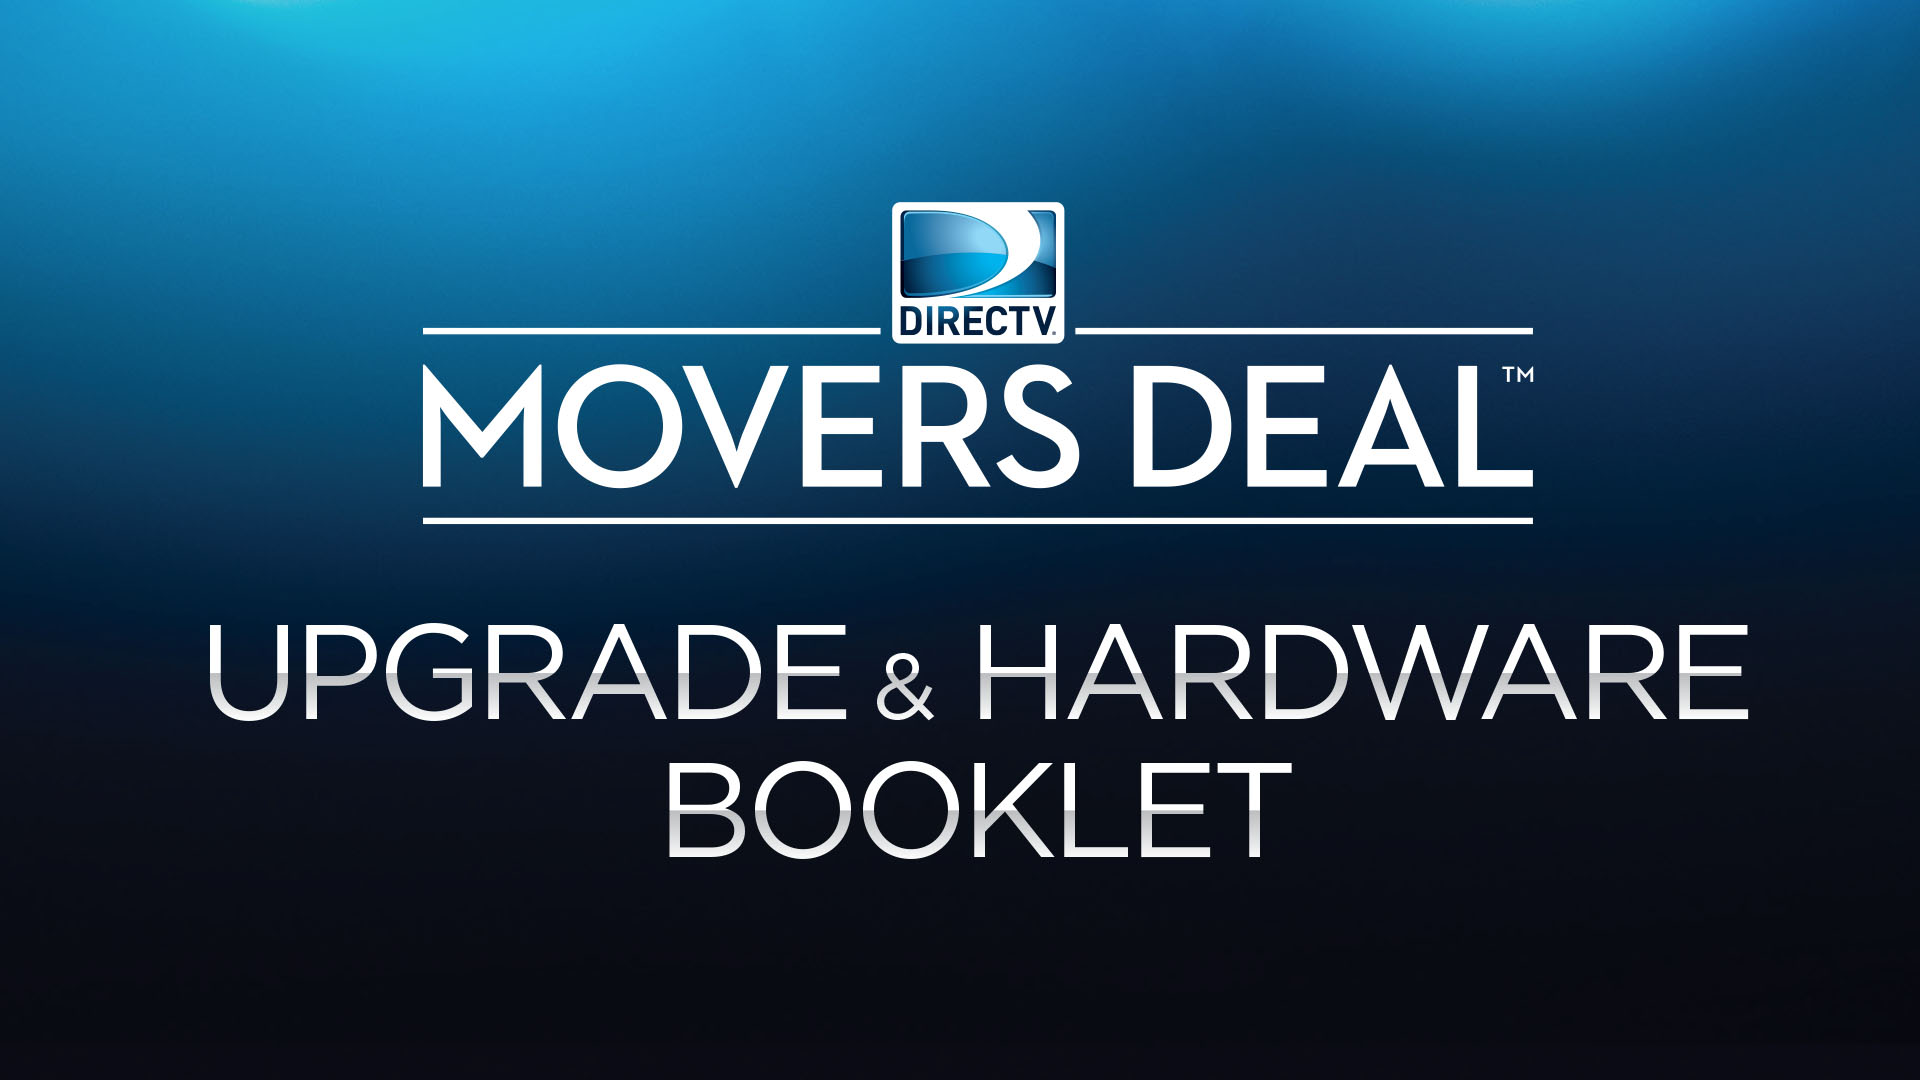 CLC1469_MoversDeal_Booklet.jpg